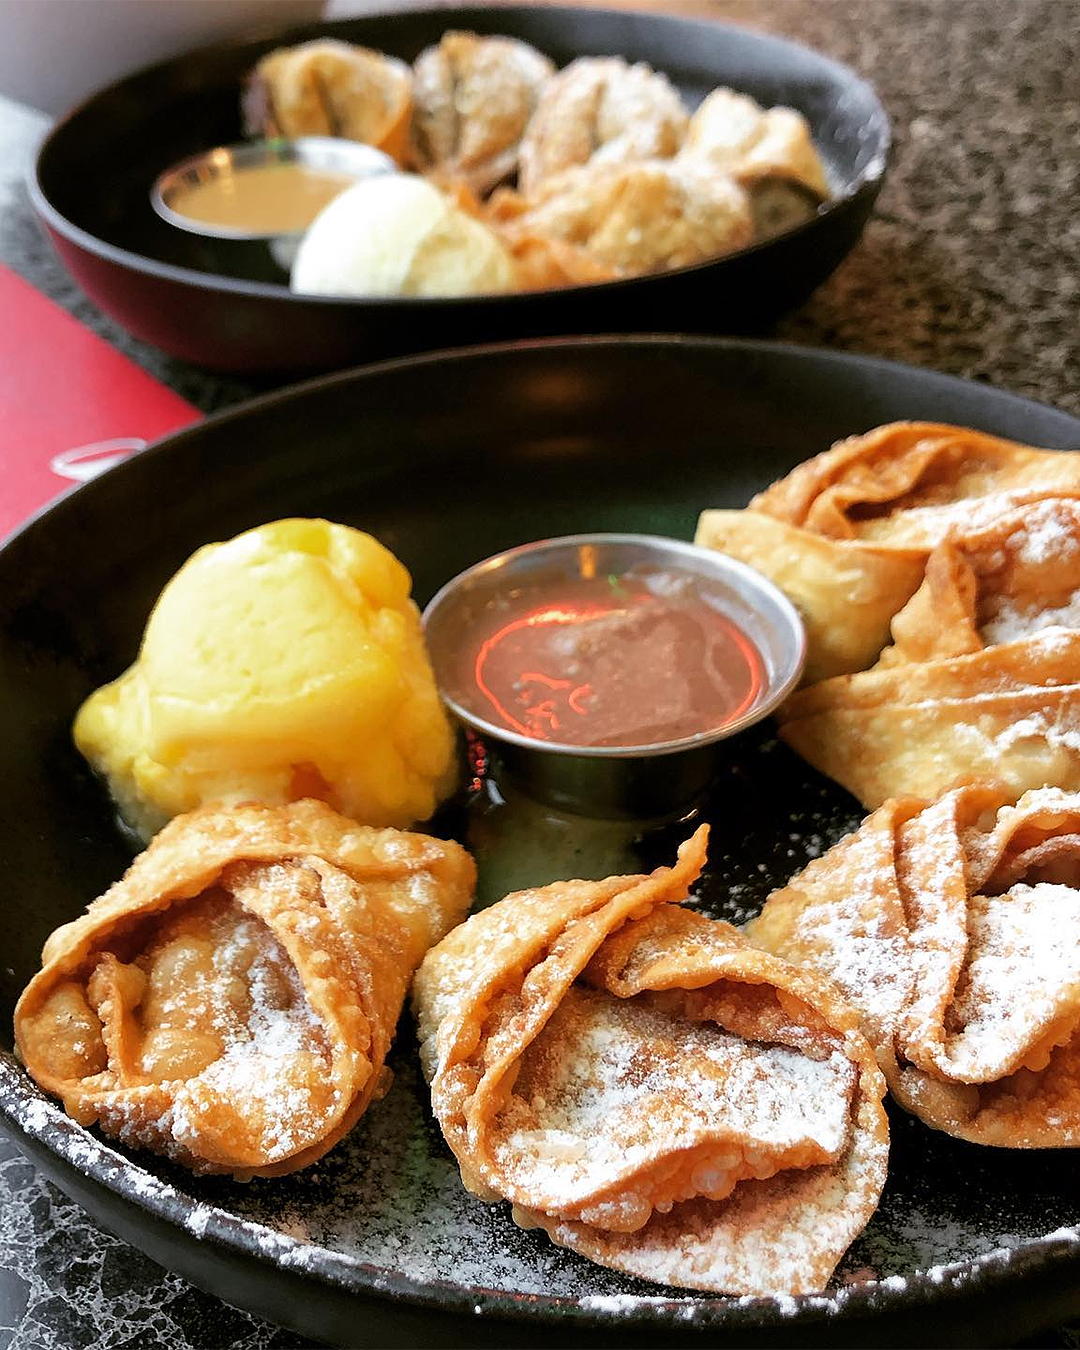 Date & Nut Parcels with orange sorbet and Banoffee Wontons with salted caramel sauce.